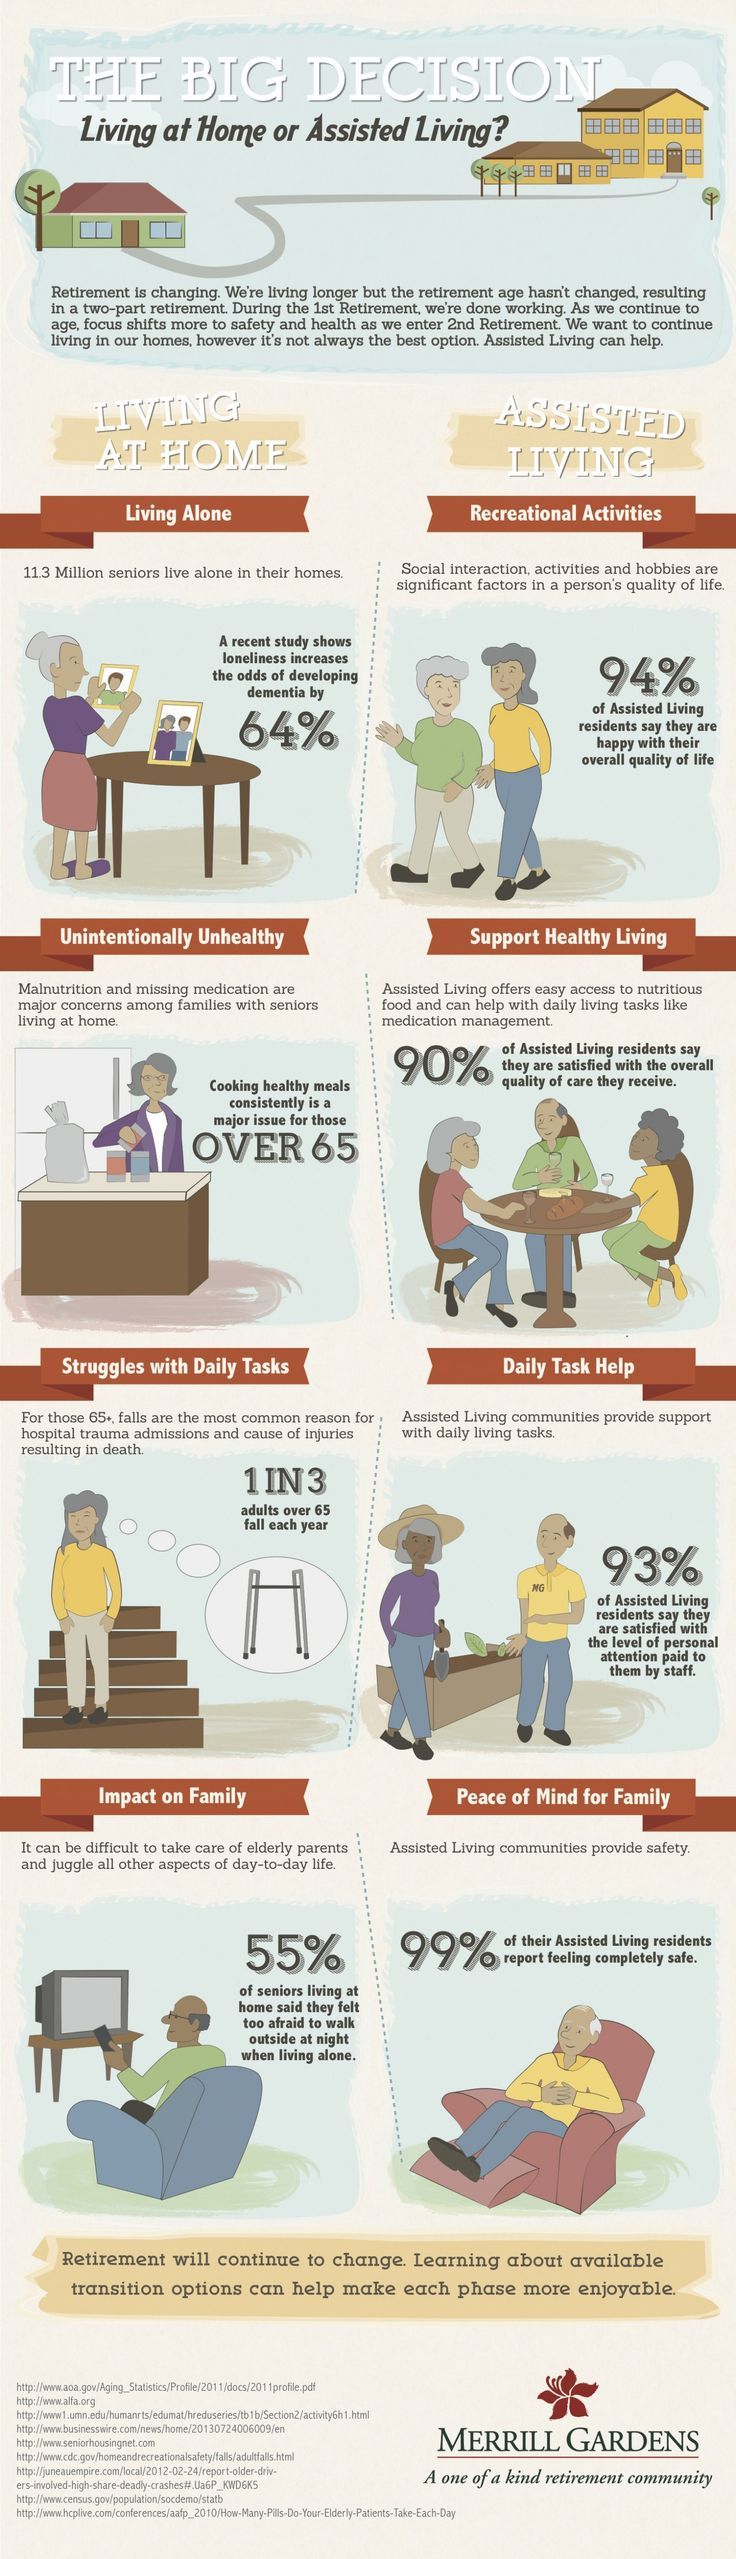 The Big Decision : Living At Home or Assisted Living?